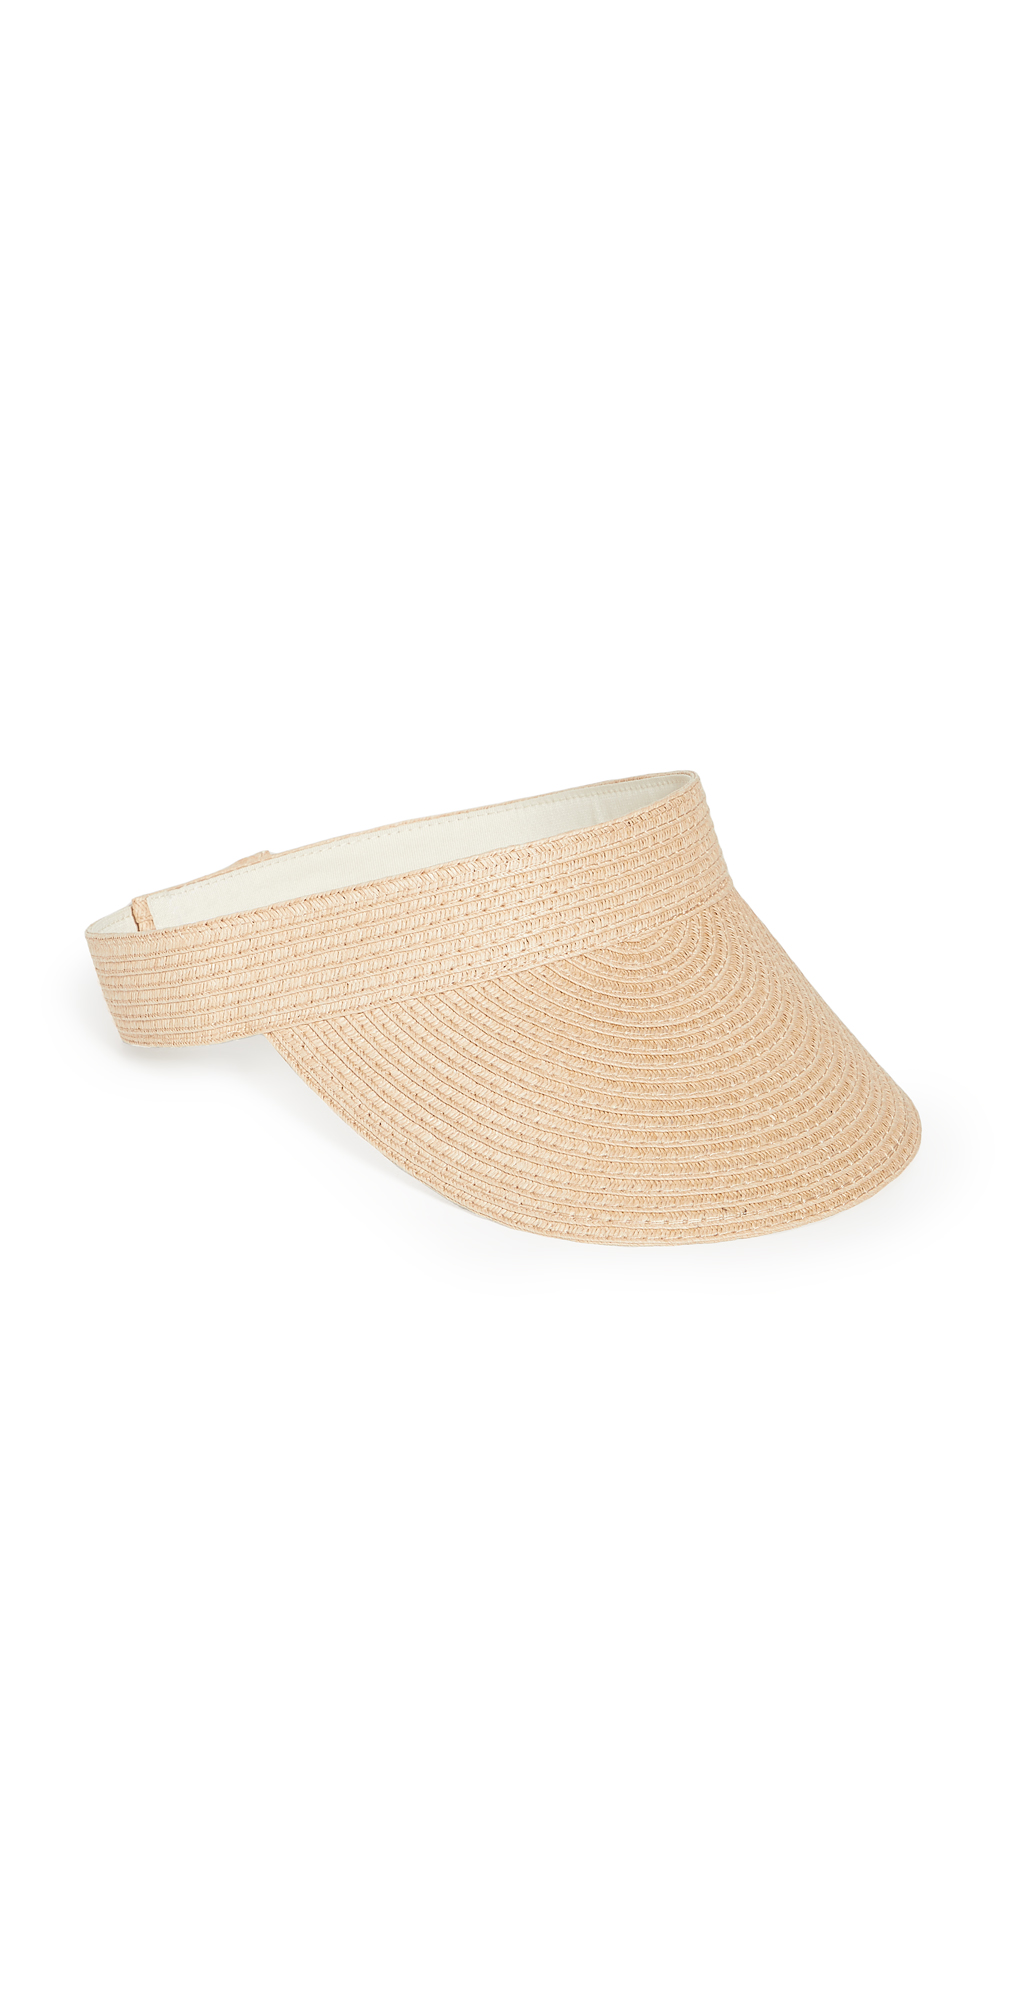 Madewell Packable Visor